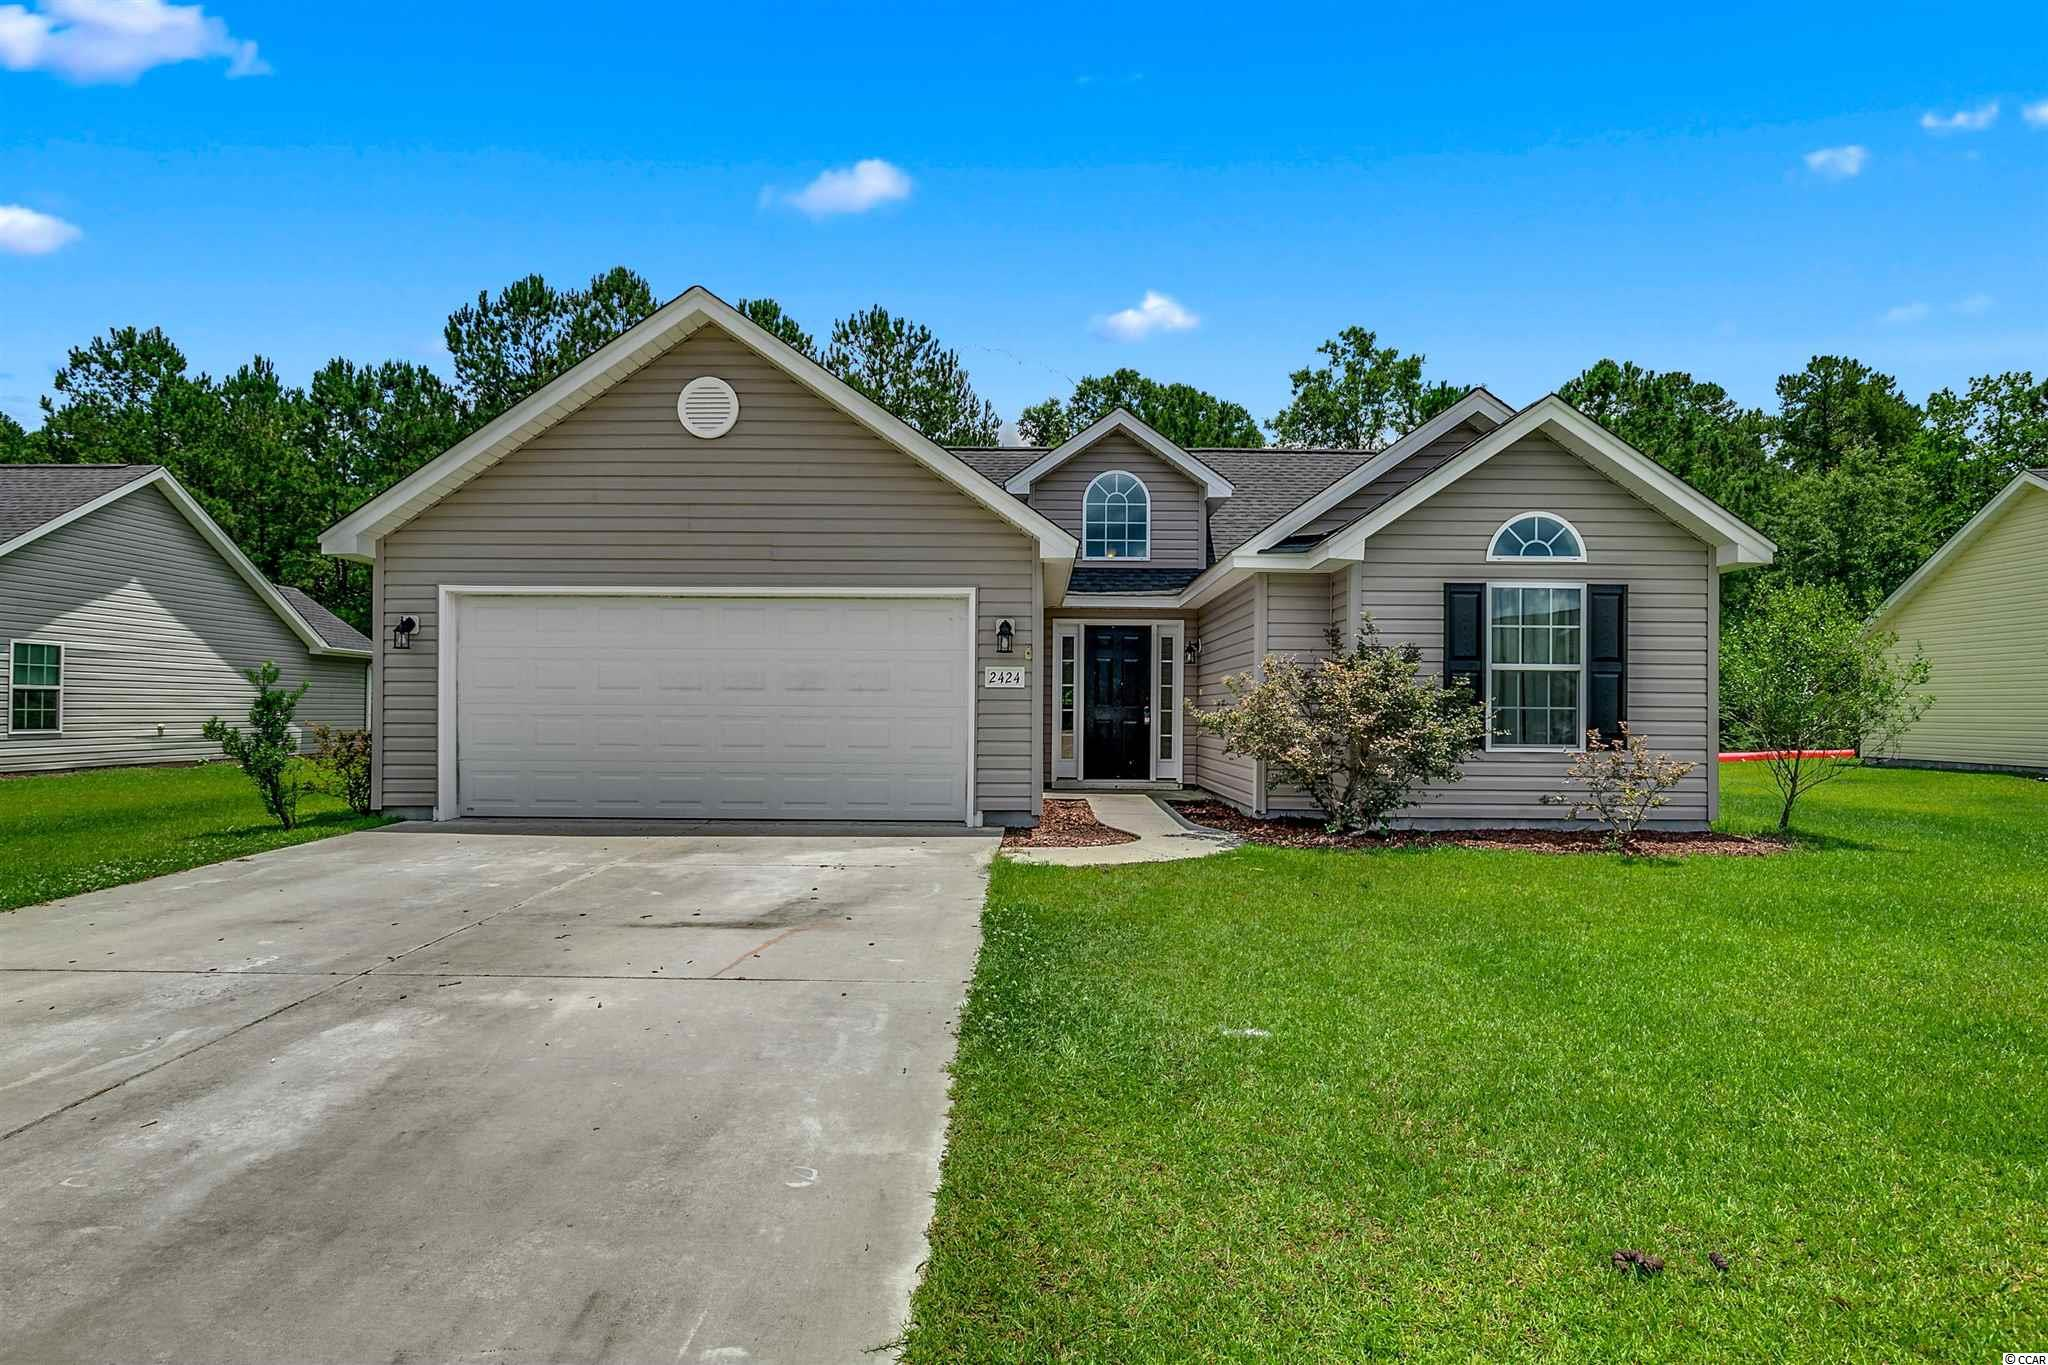 Great value for this 3 bedroom / 2 bath ranch priced to sell in Jordan Estates!  Enjoy neutral colors, vaulted and tray ceilings, split bedroom plan, a desirable open floor plan, dream kitchen with espresso cabinets, dark stainless steel appliances, granite countertops, wooded back yard and more!  Don't delay!